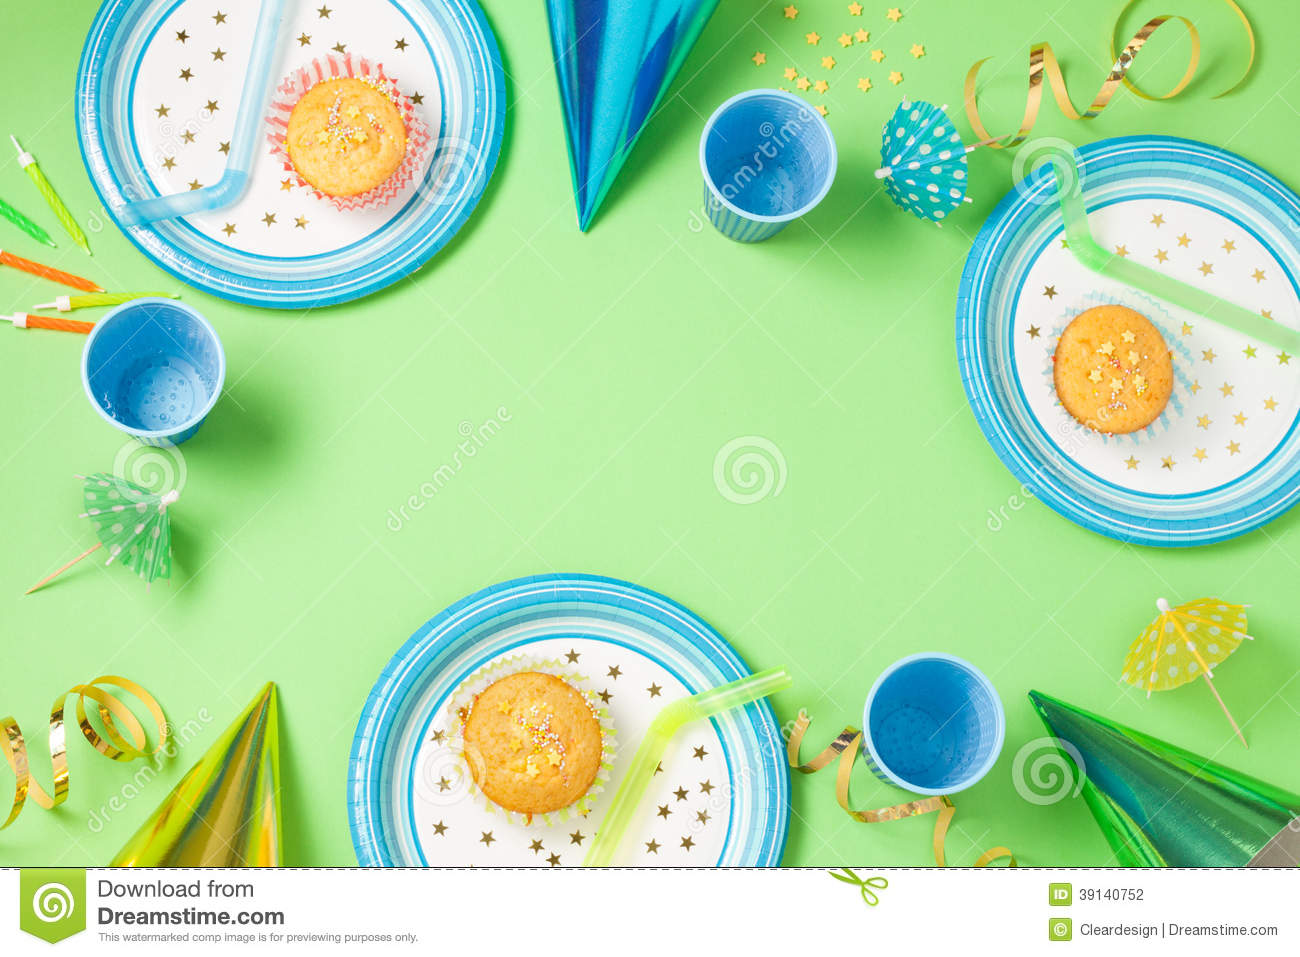 Boy Birthday Or Party Green Table Setting Stock Photo ...